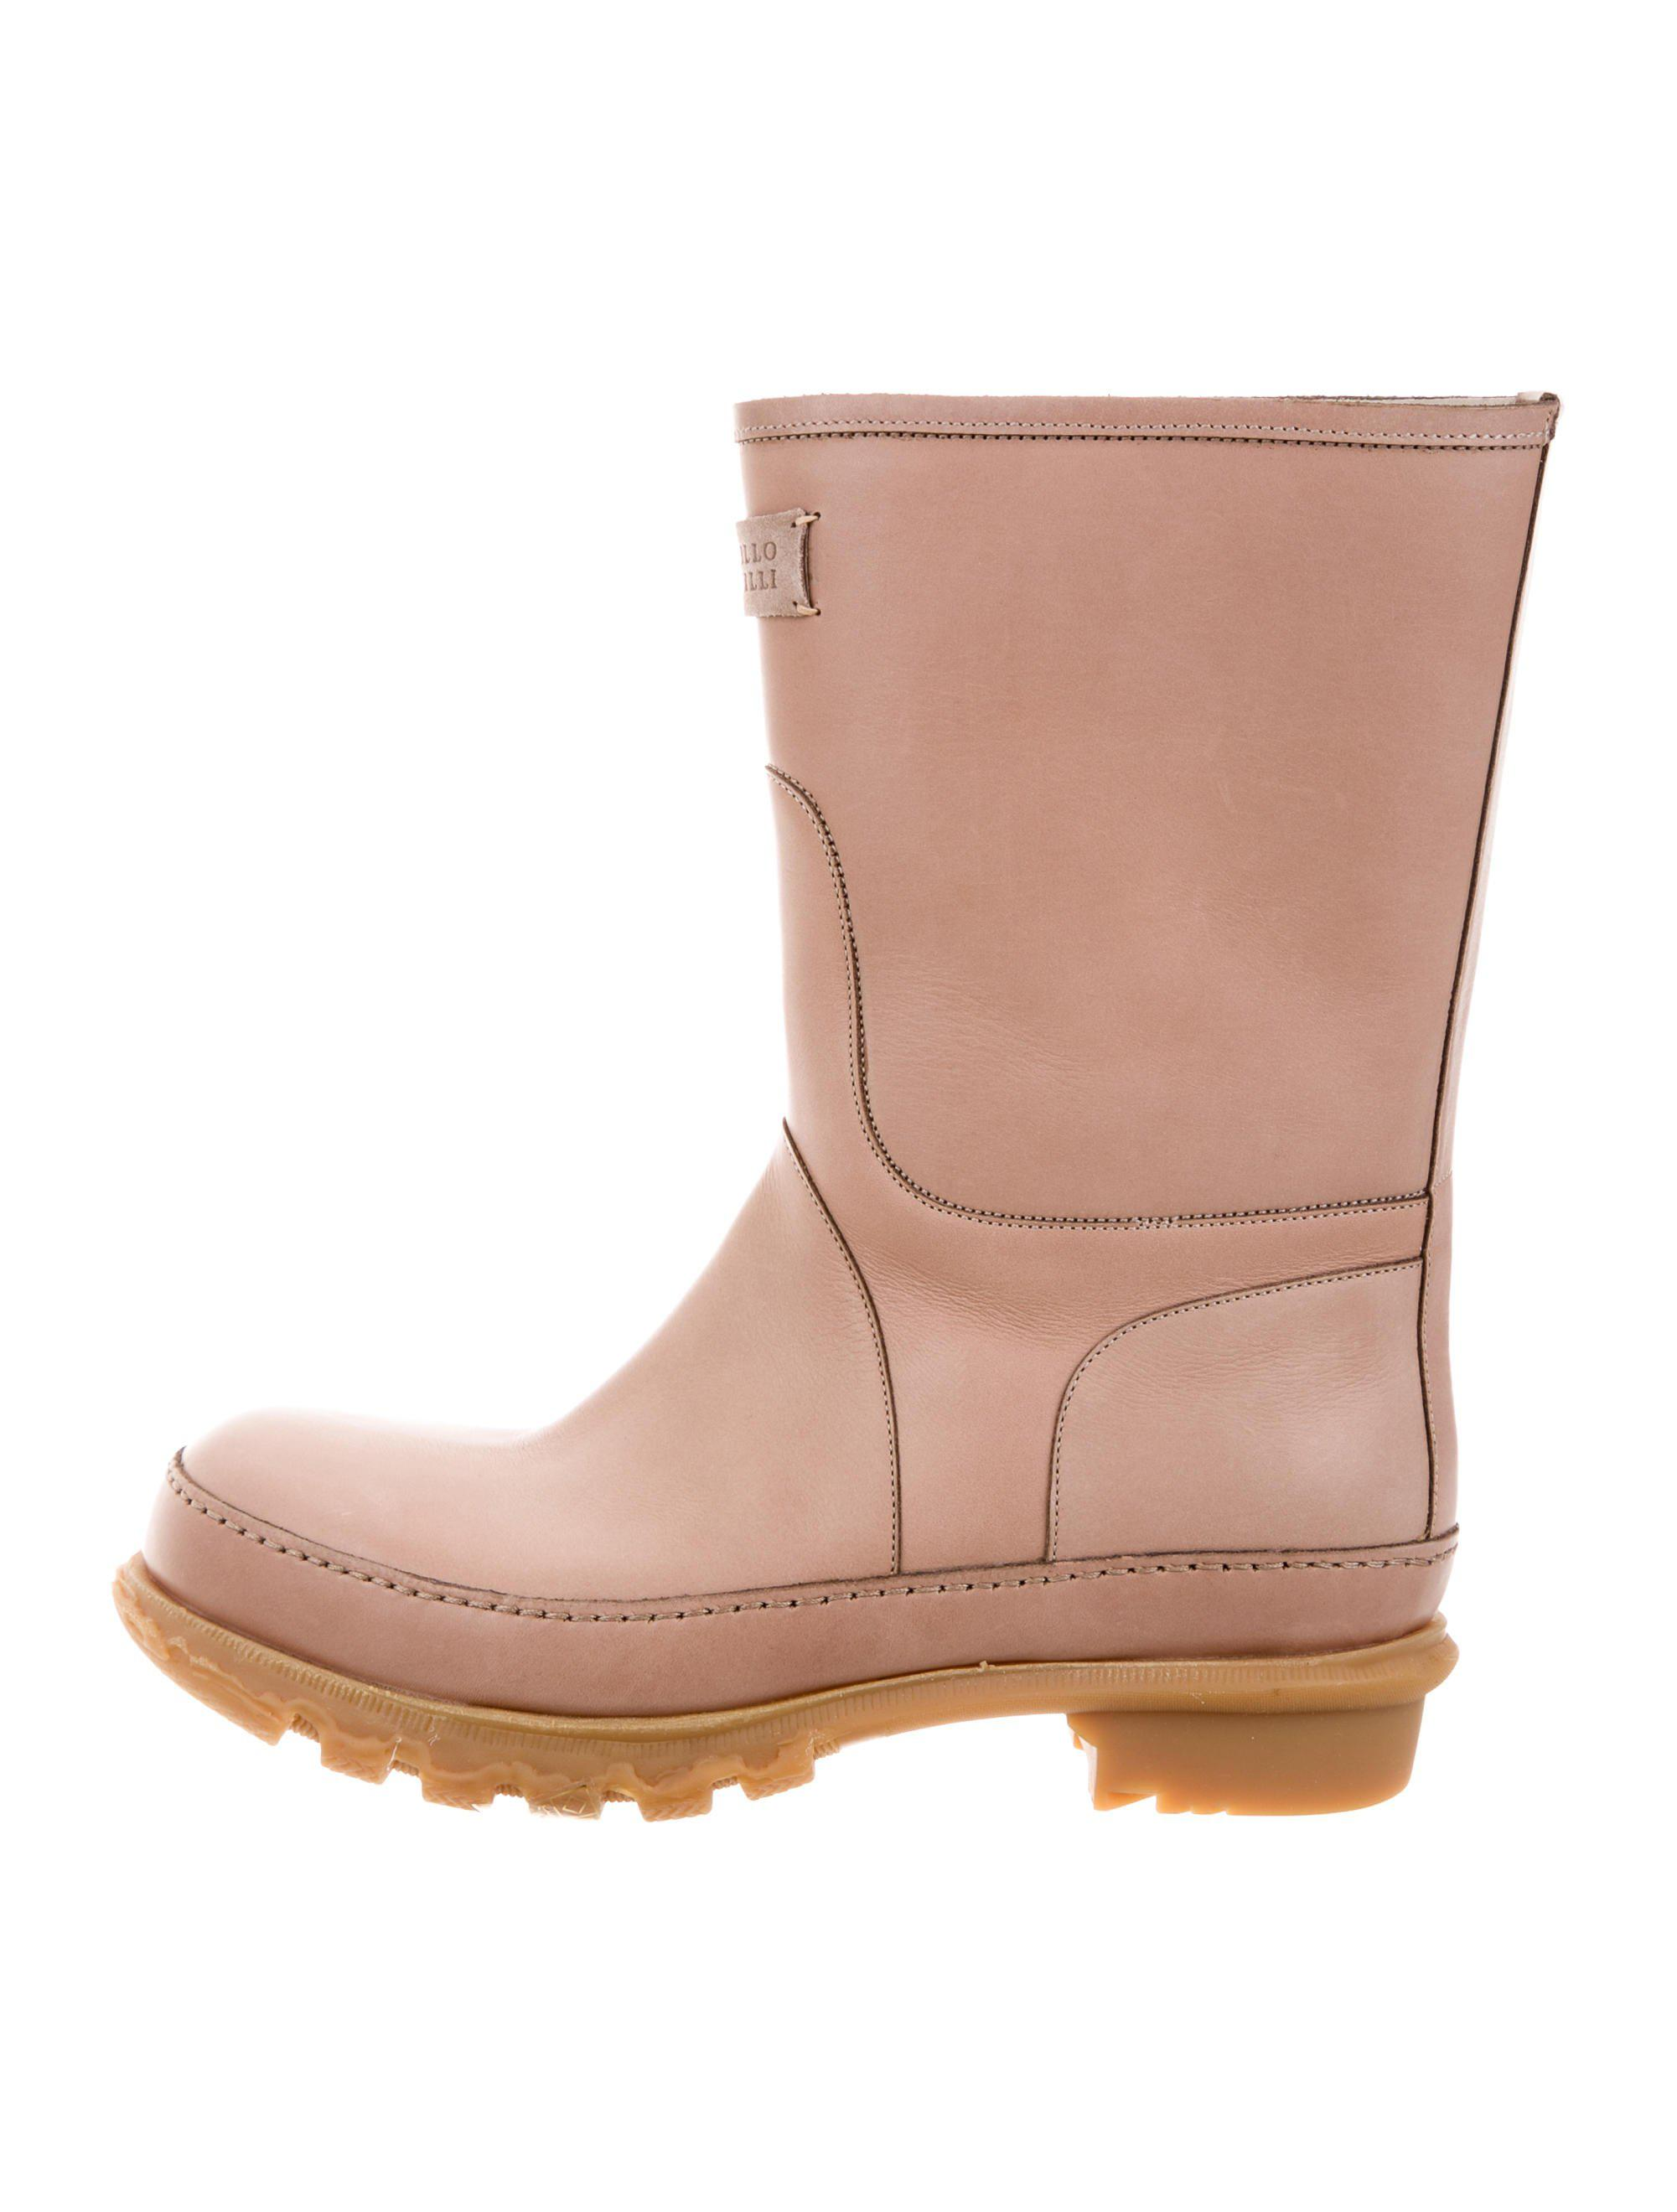 Brunello Cucinelli Leather Round-Toe Boots w/ Tags buy cheap for cheap sale shopping online clearance from china collections cheap online cheap best wholesale eVBWYn77a